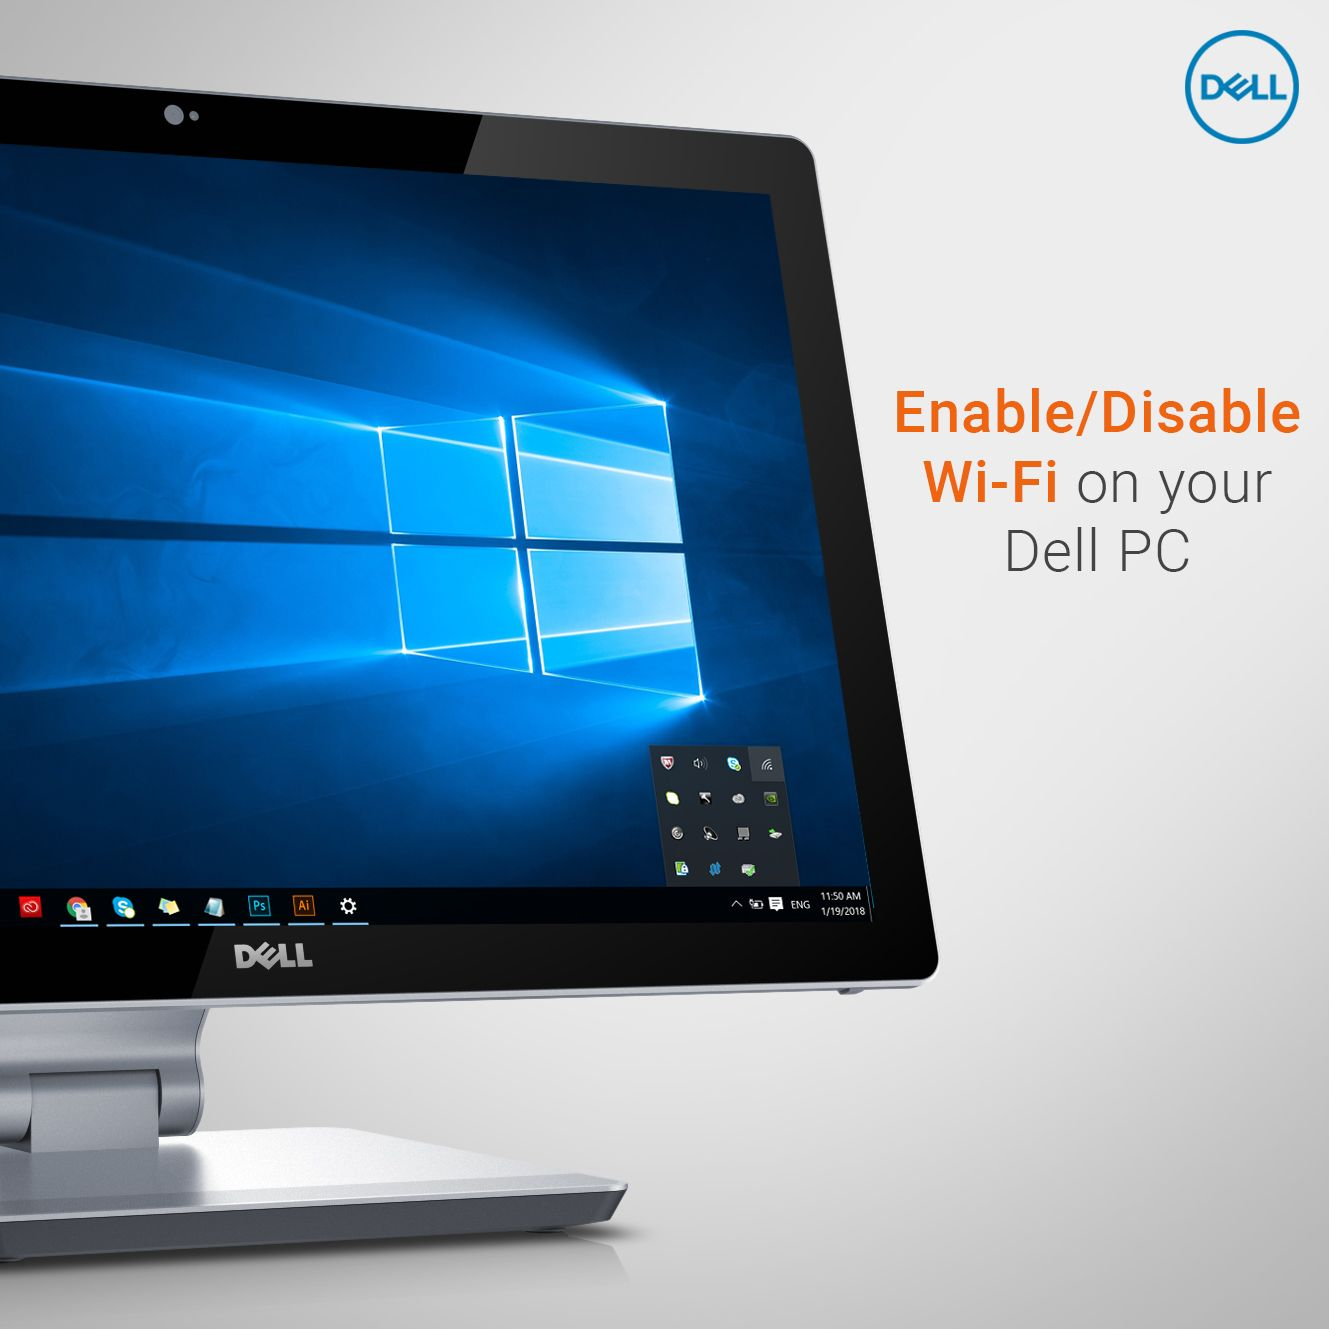 Enabling or Disabling wifi on current #Dell PCs is easy